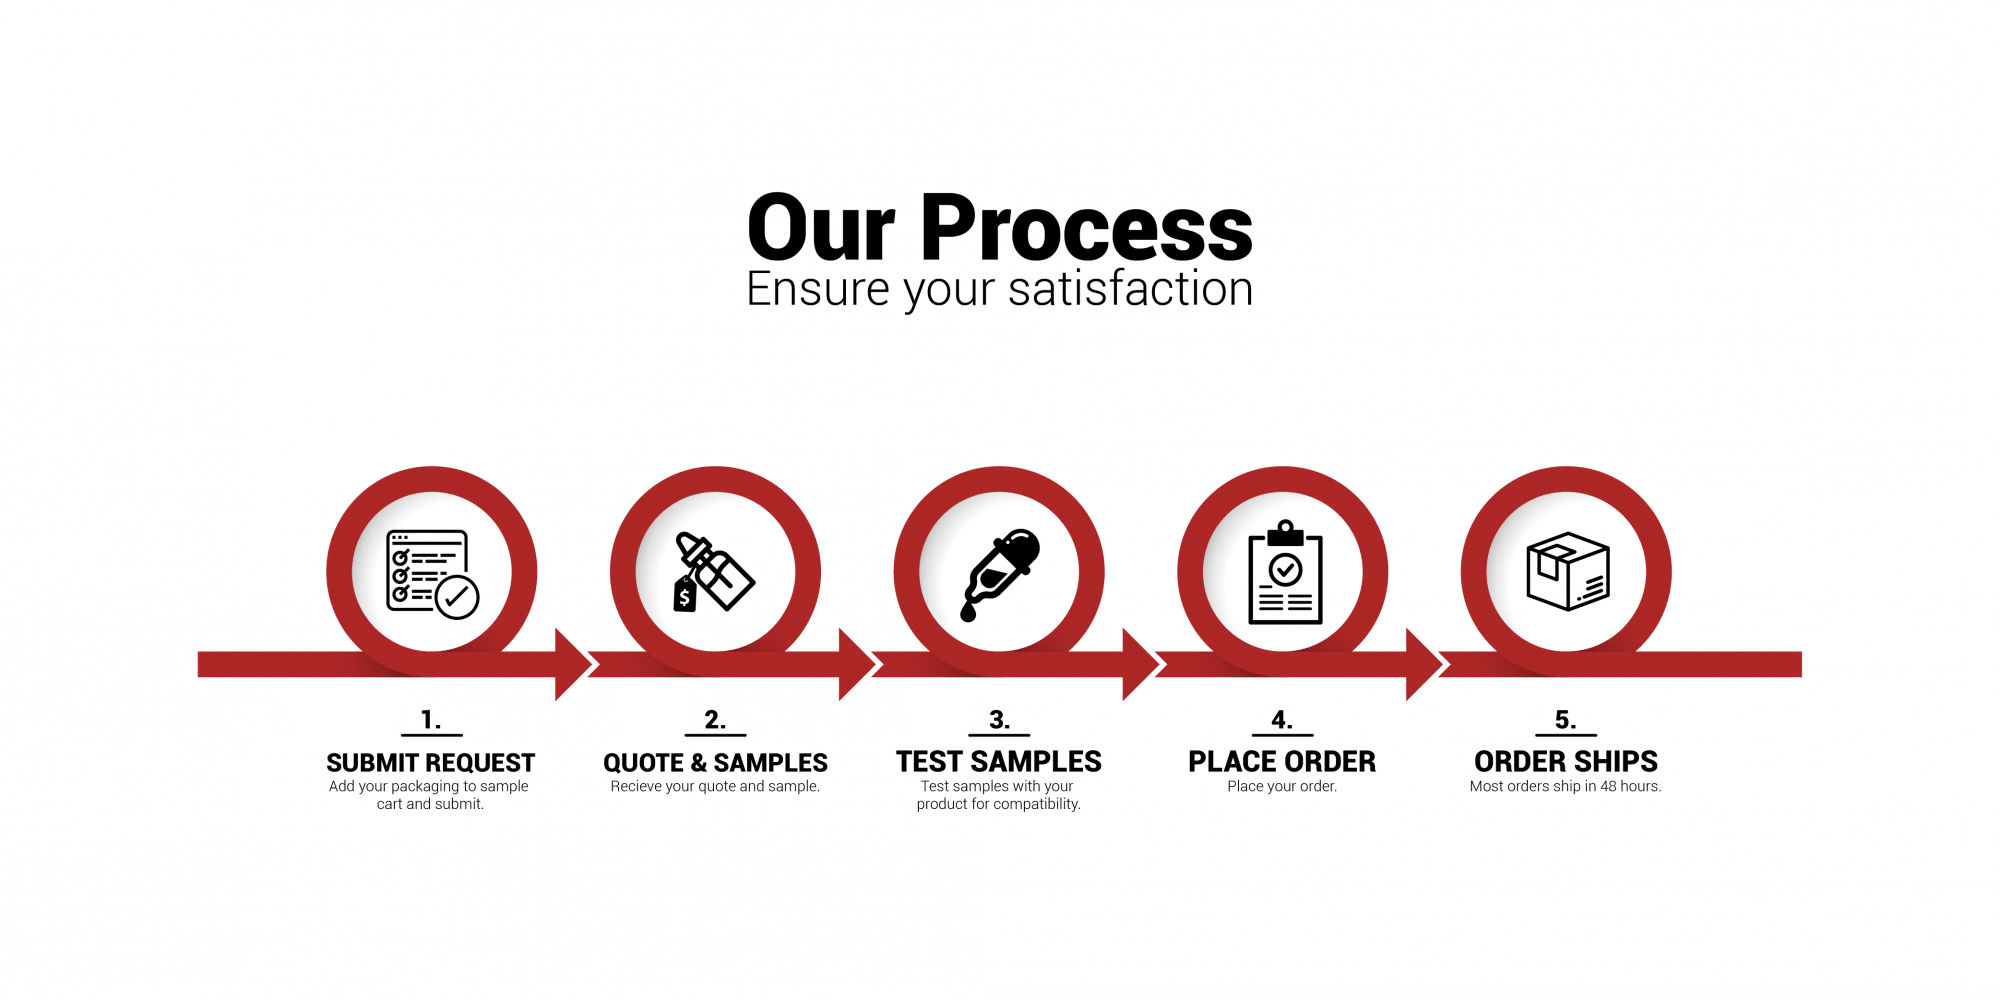 Our Process of Shipping at FH Packaging